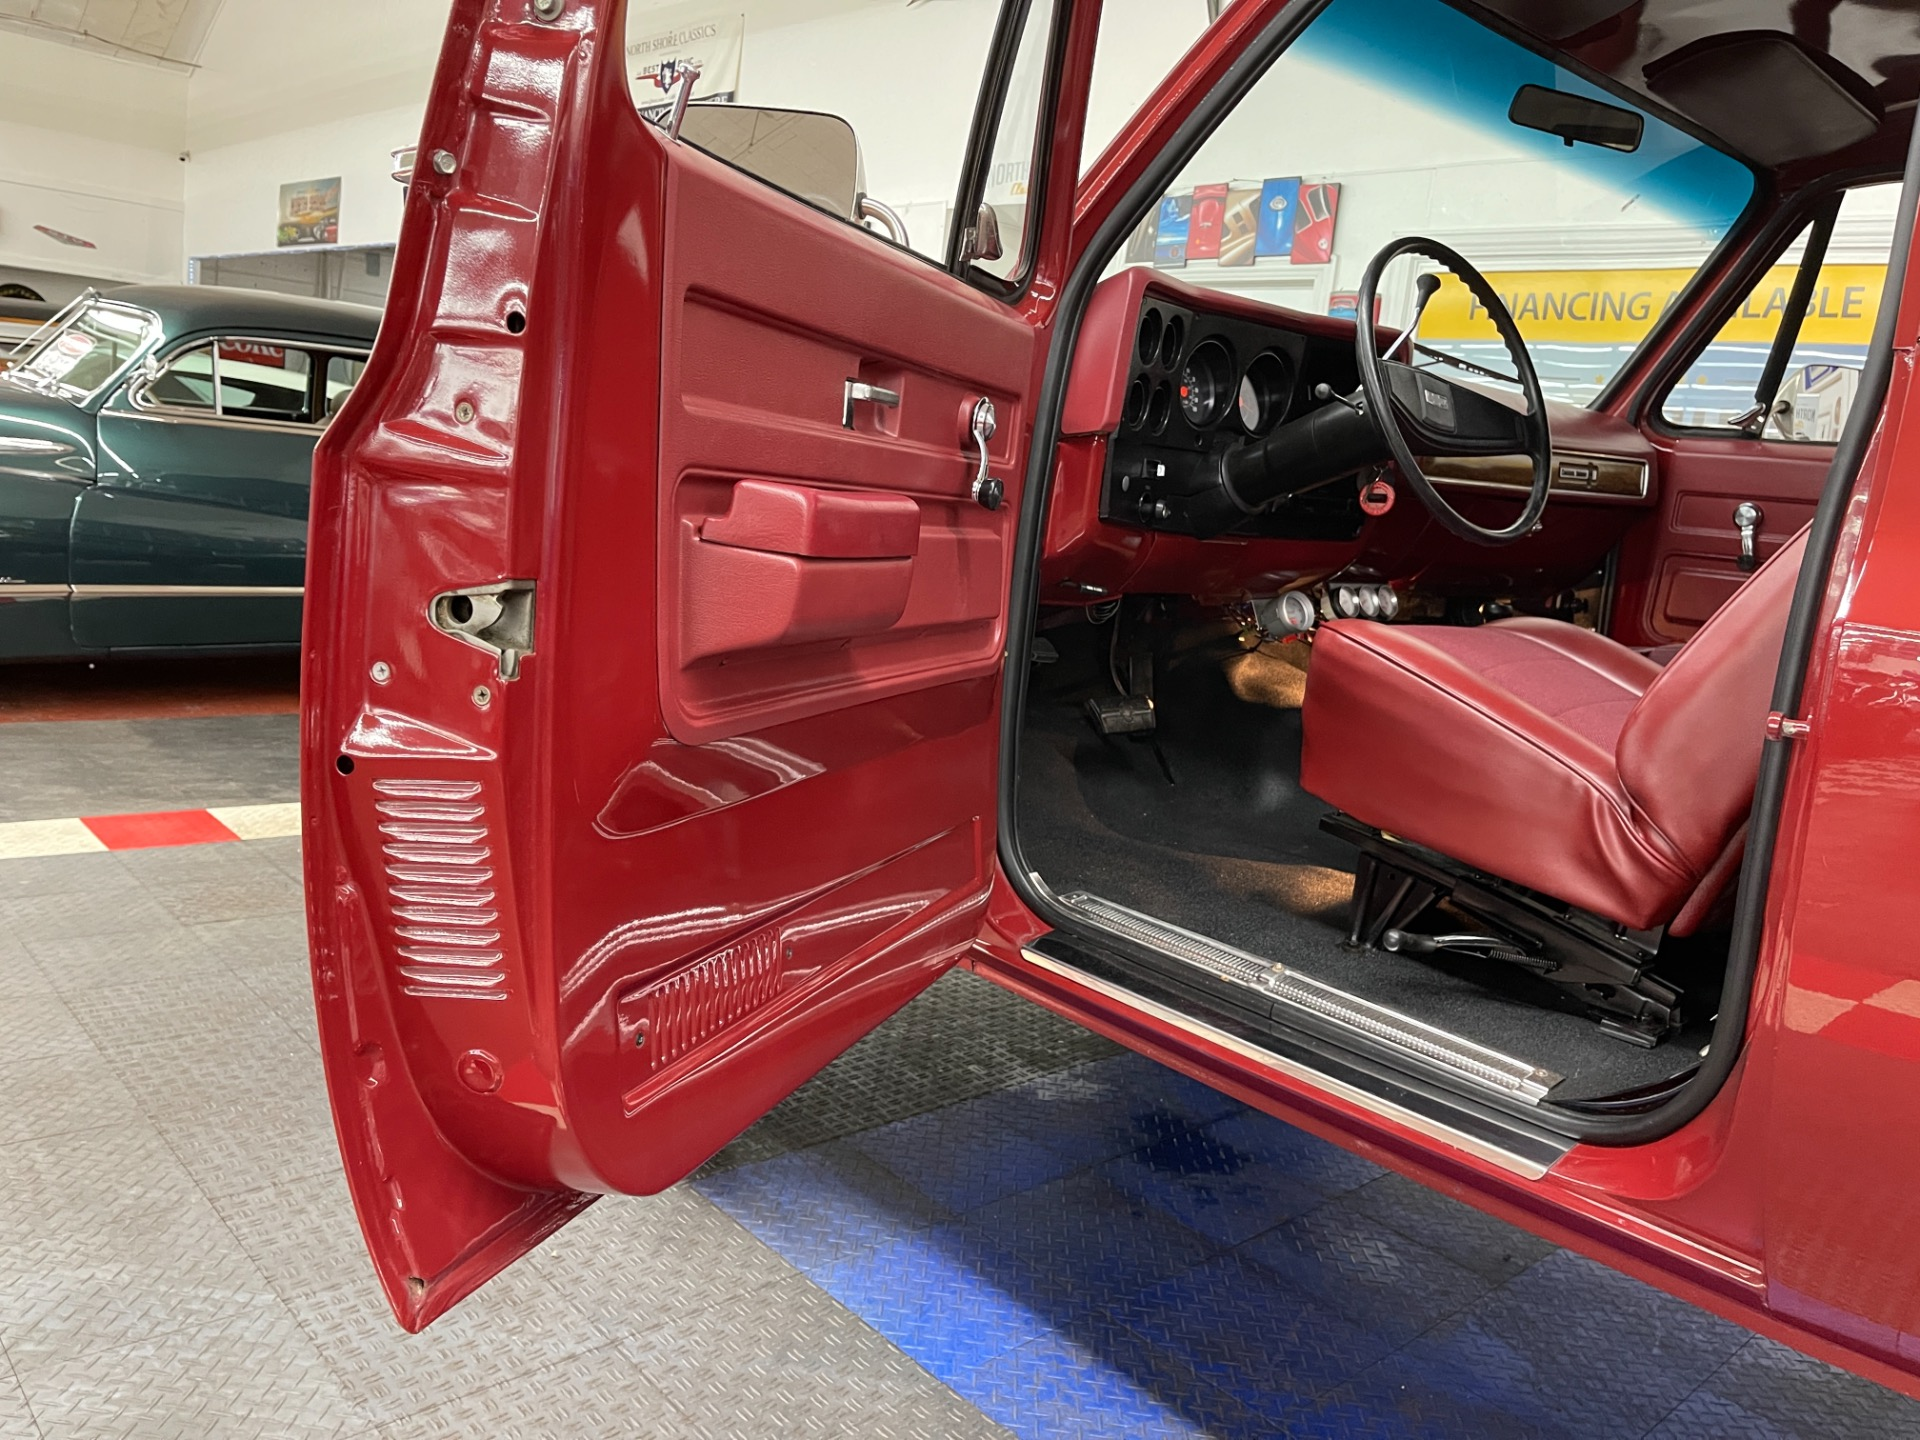 Used 1976 Chevrolet Blazer - K5 4x4 - NEW PAINT - SUPER CLEAN BODY AND FLOORS - SEE VIDEO - | Mundelein, IL